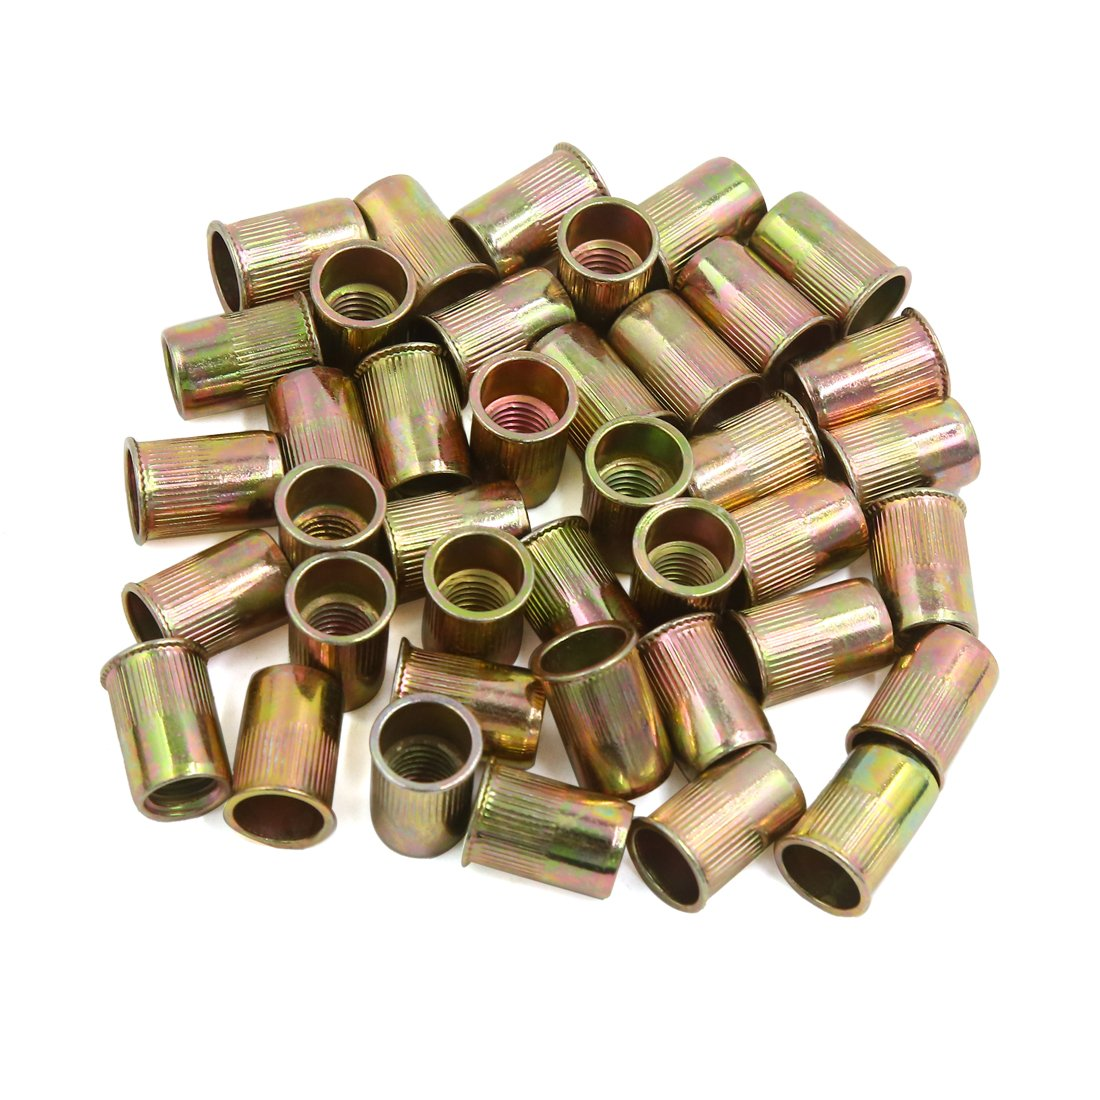 uxcell a16073000ux1895 40pcs M10 Bronze Tone Small Head Stainless Steel Thread Metal Rivet Nut Nutserts, 40 Pack